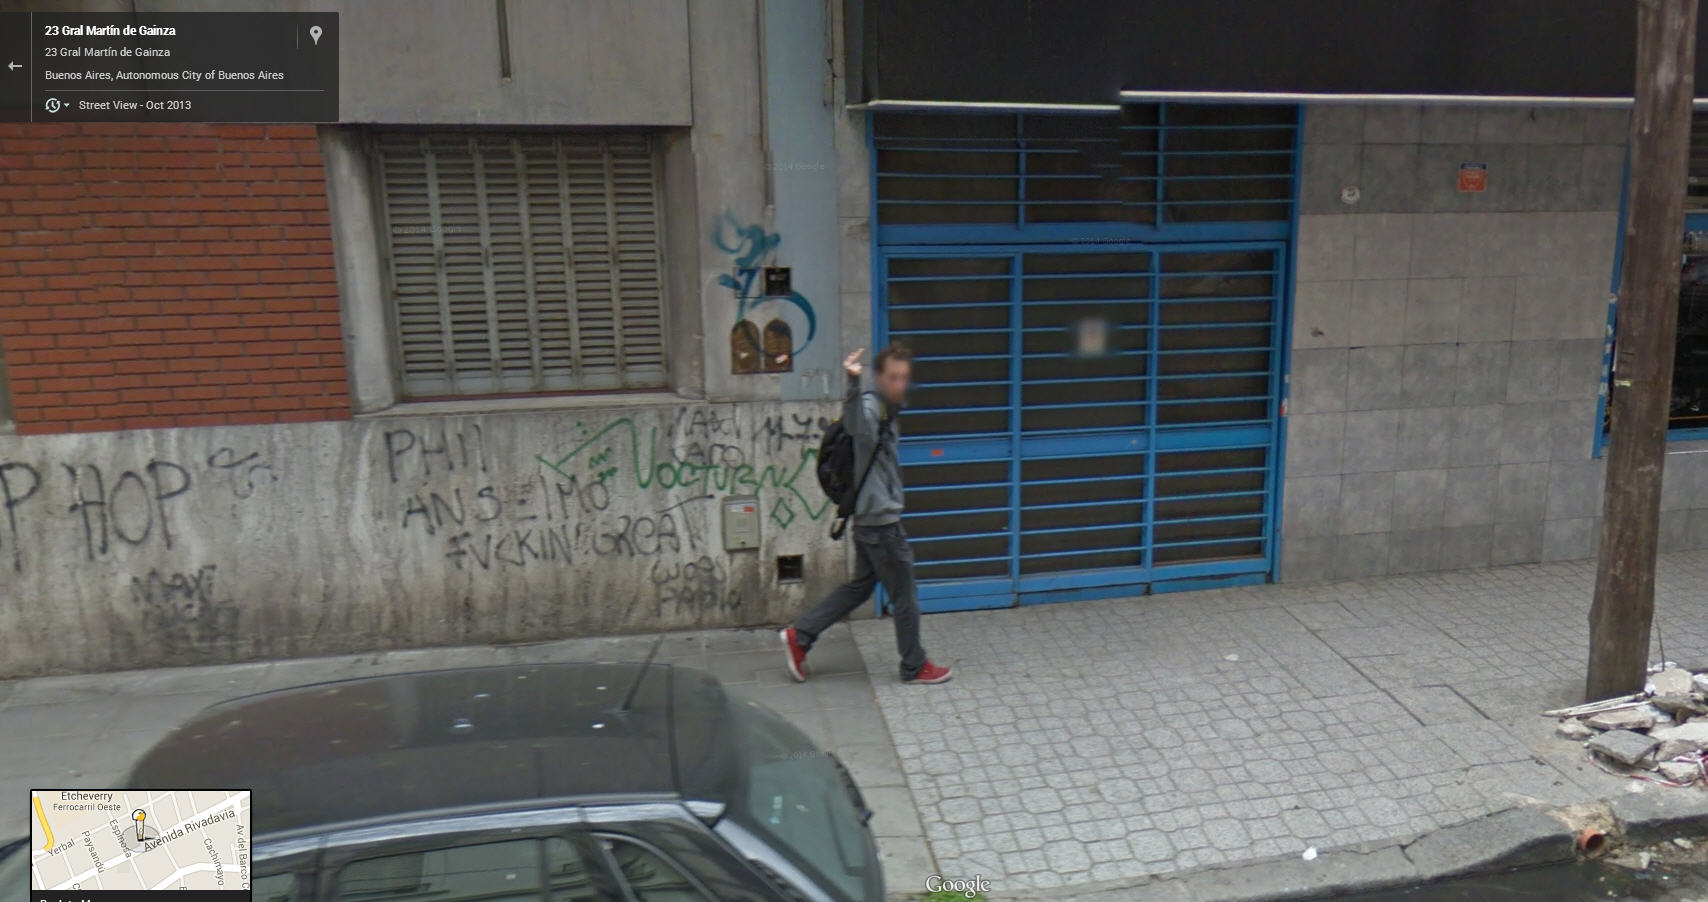 First One Finger Salute Discovered via Google Street Argentina